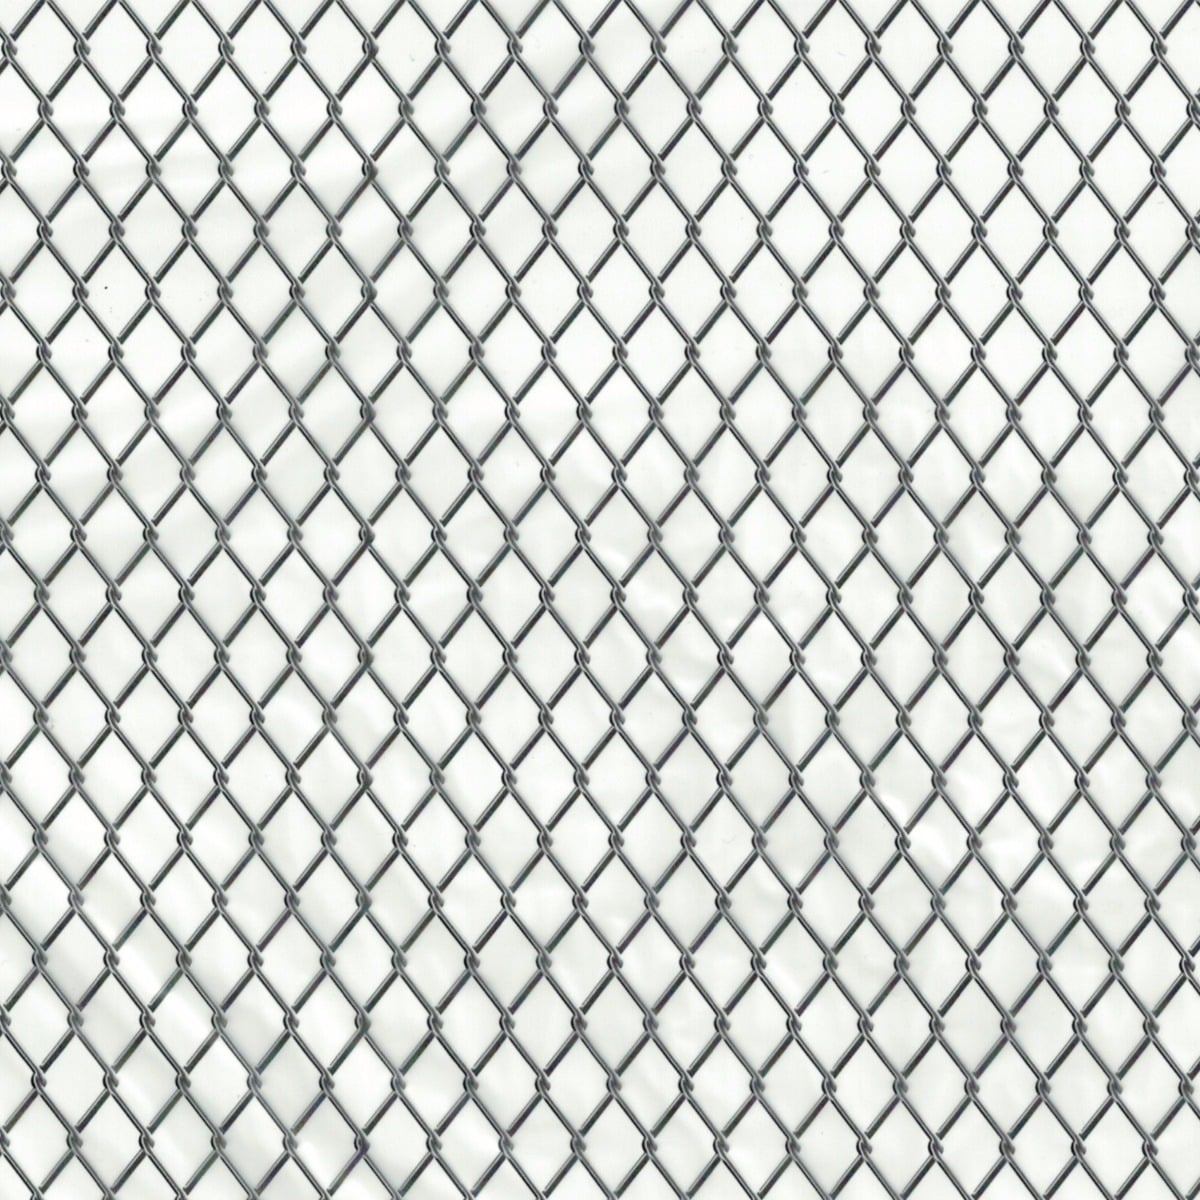 Wire Fence. Wire Fence Dip This - Fizzyinc.co